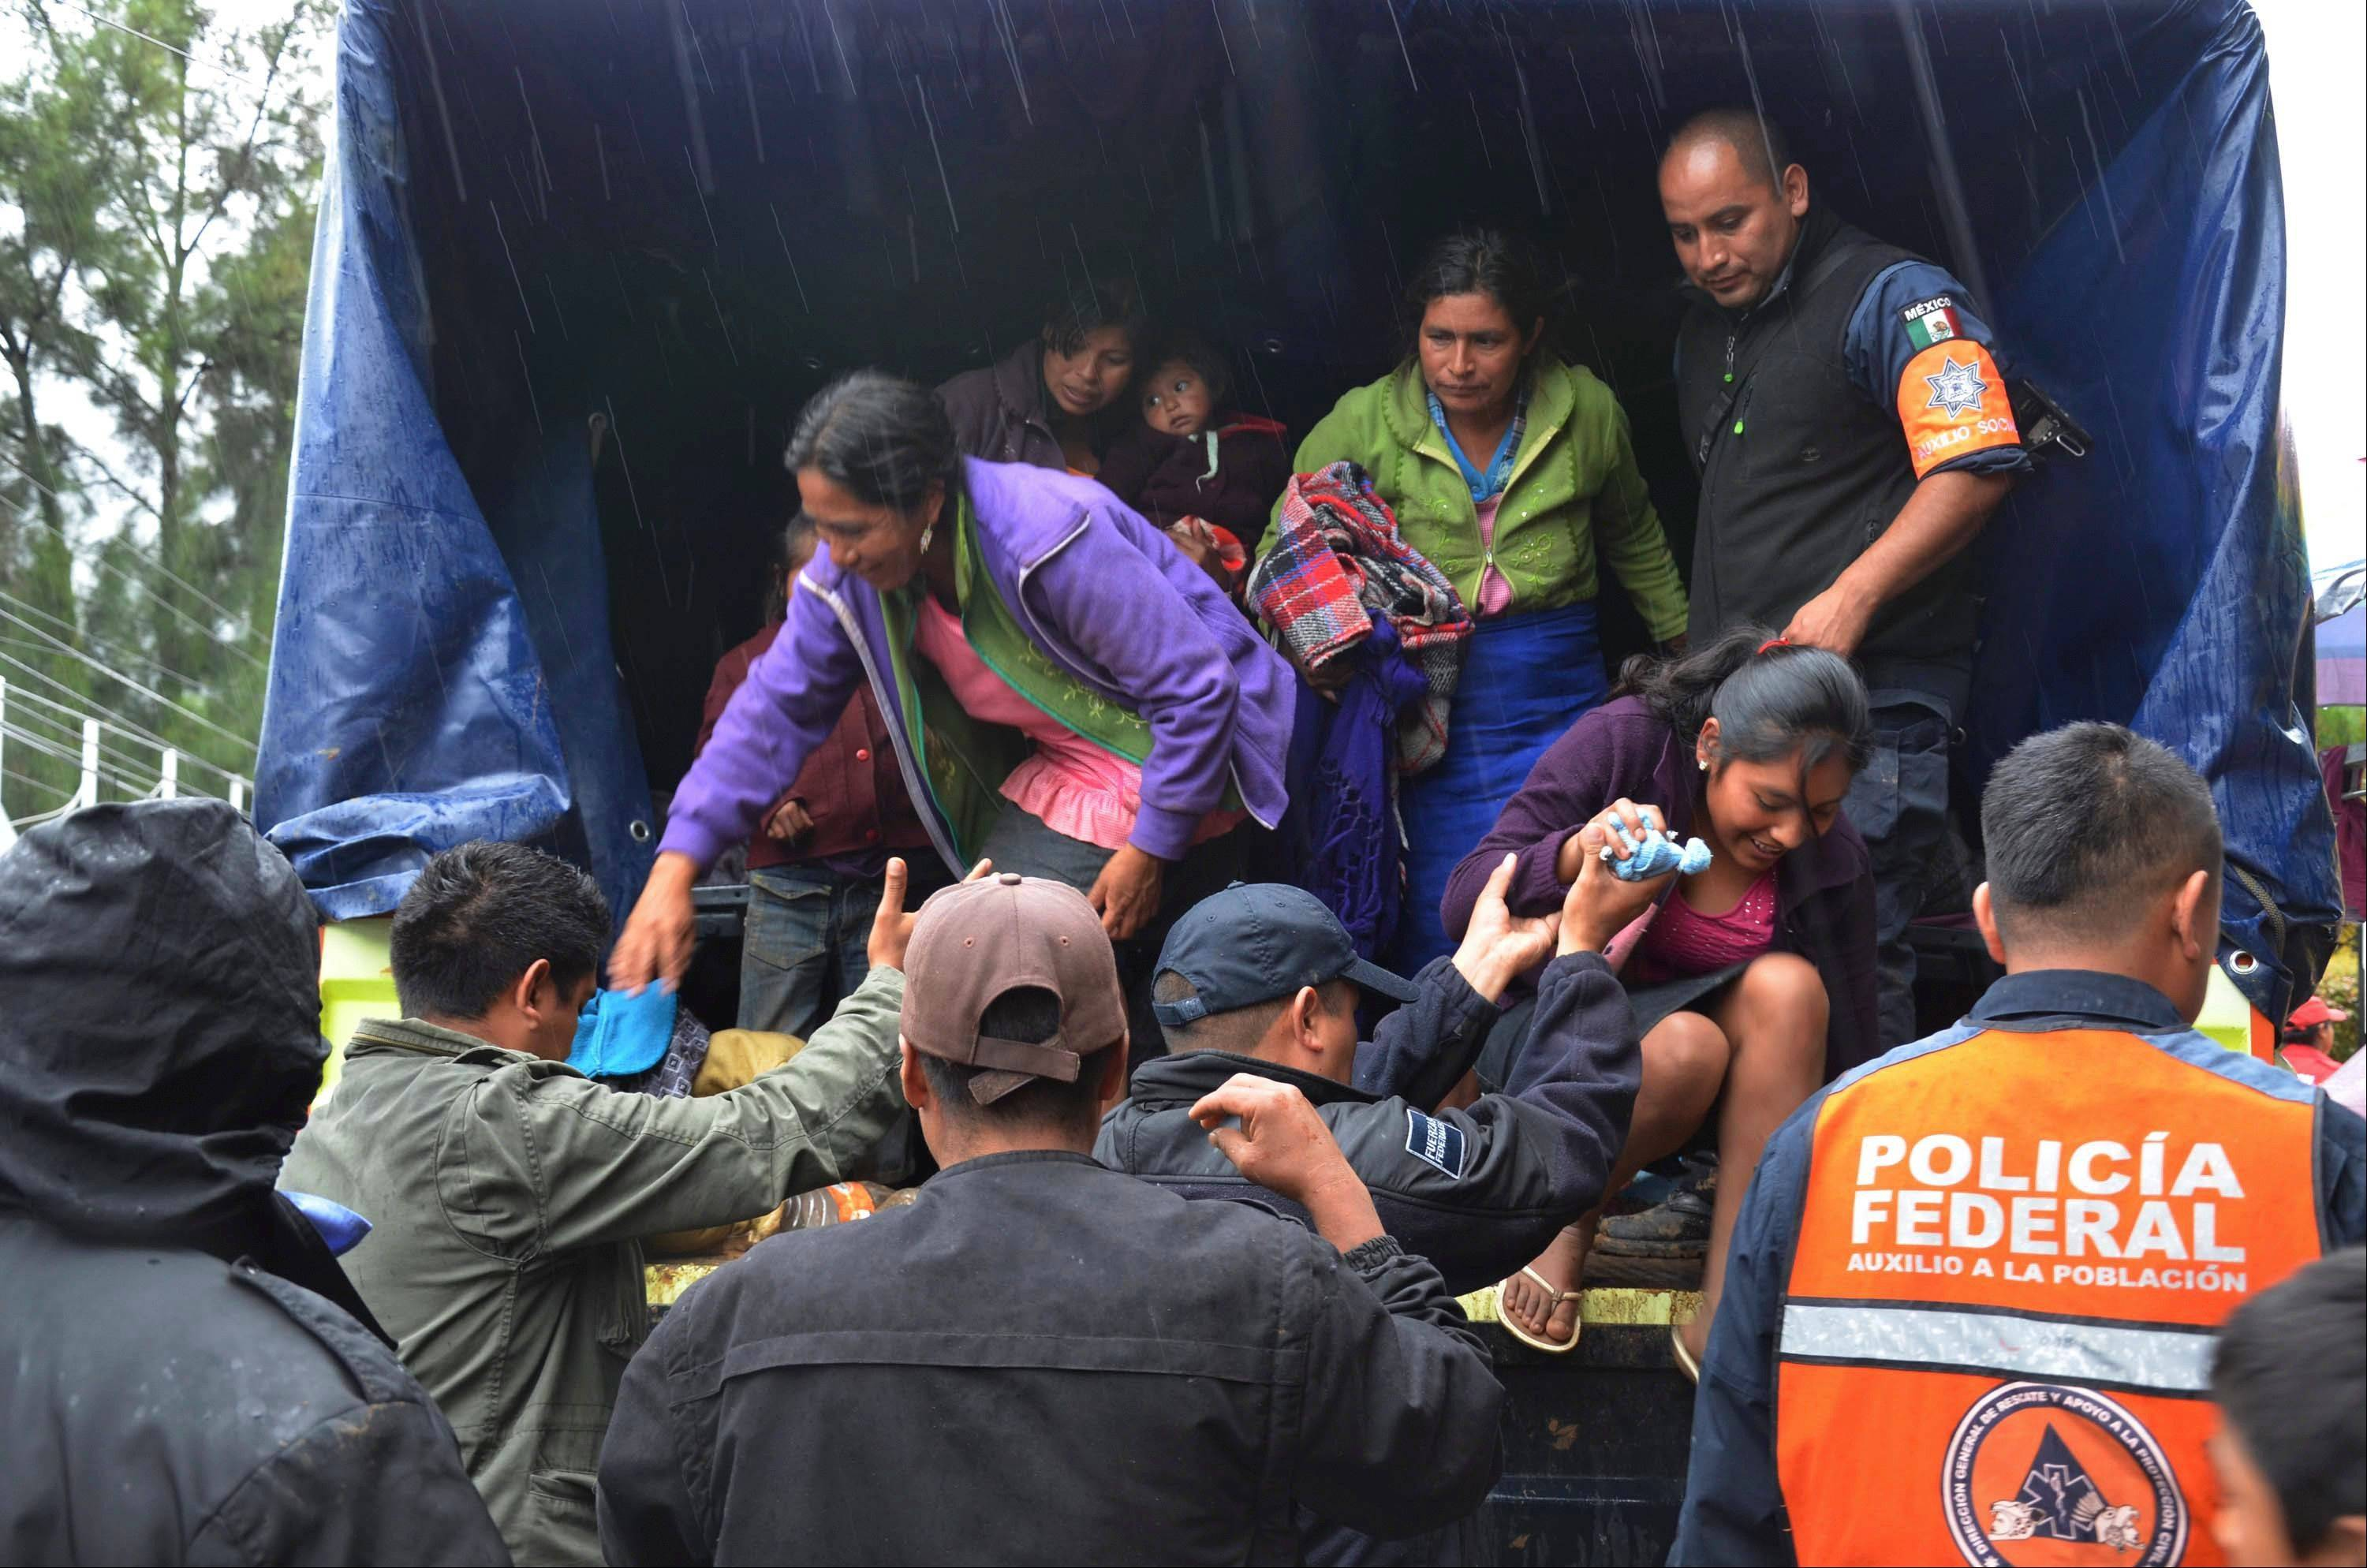 People are helped by federal police as they get off a truck to be taken to as makeshift shelter in the city of Chilpancingo, Mexico, Monday Oct. 21, 2013. At least 120 families from nearby communities were evacuated when Hurricane Raymond gained more strength and threatened to hurl heavy rains onto a sodden region already devastated by last month's Tropical Storm Manuel. (AP Photo/Alejandrino Gonzalez)